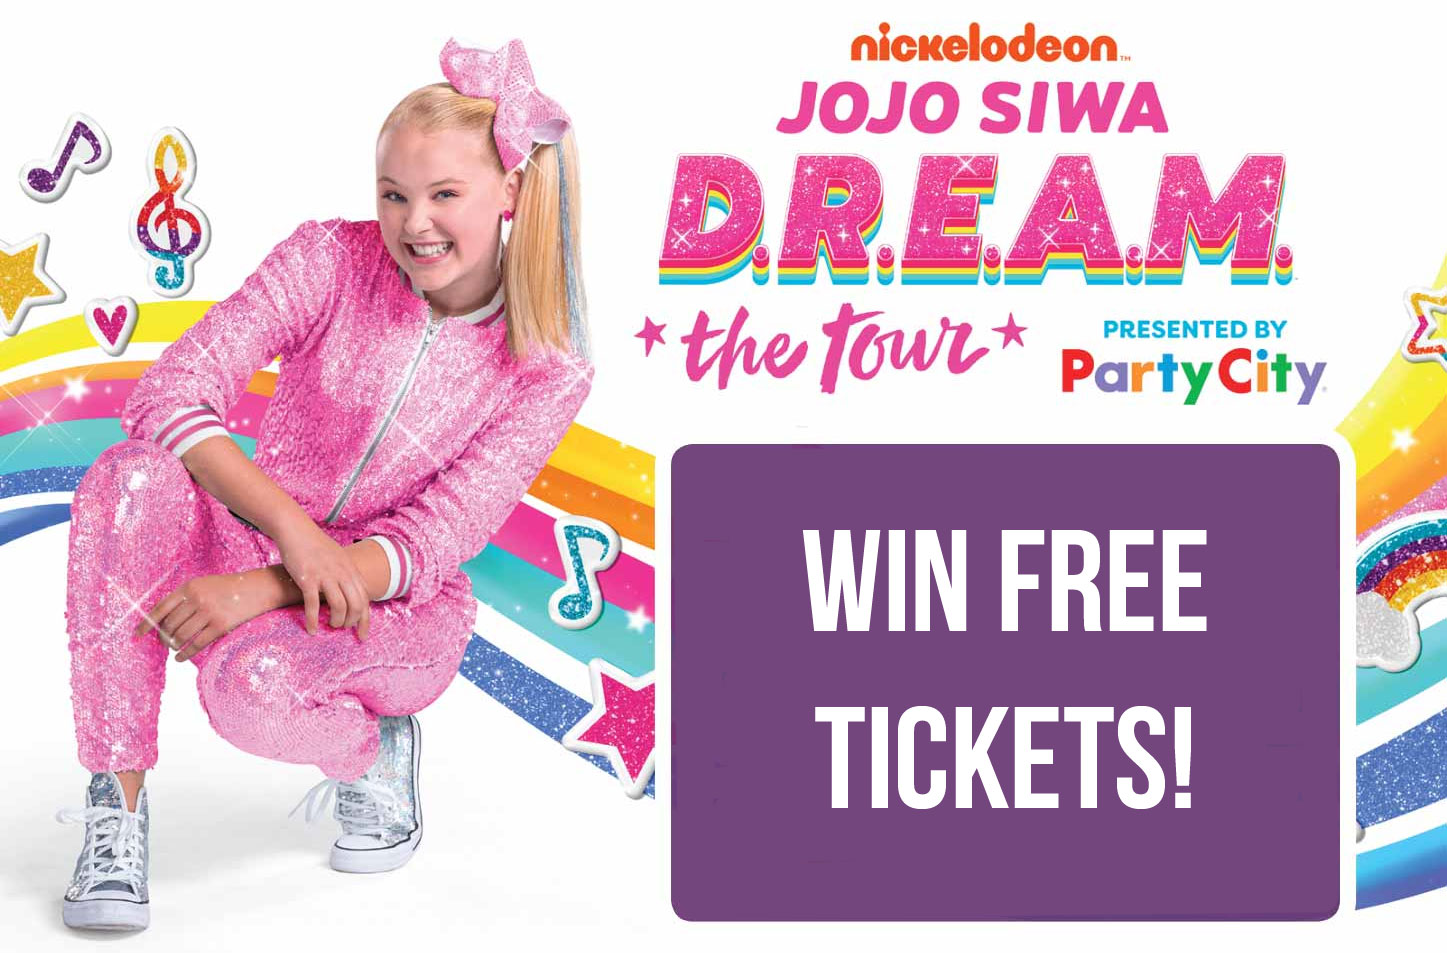 JoJo Siwa is coming to a city near you and this is your chance to win Free tickets to see her live and in person. Visit Sweeties Code page to find the code